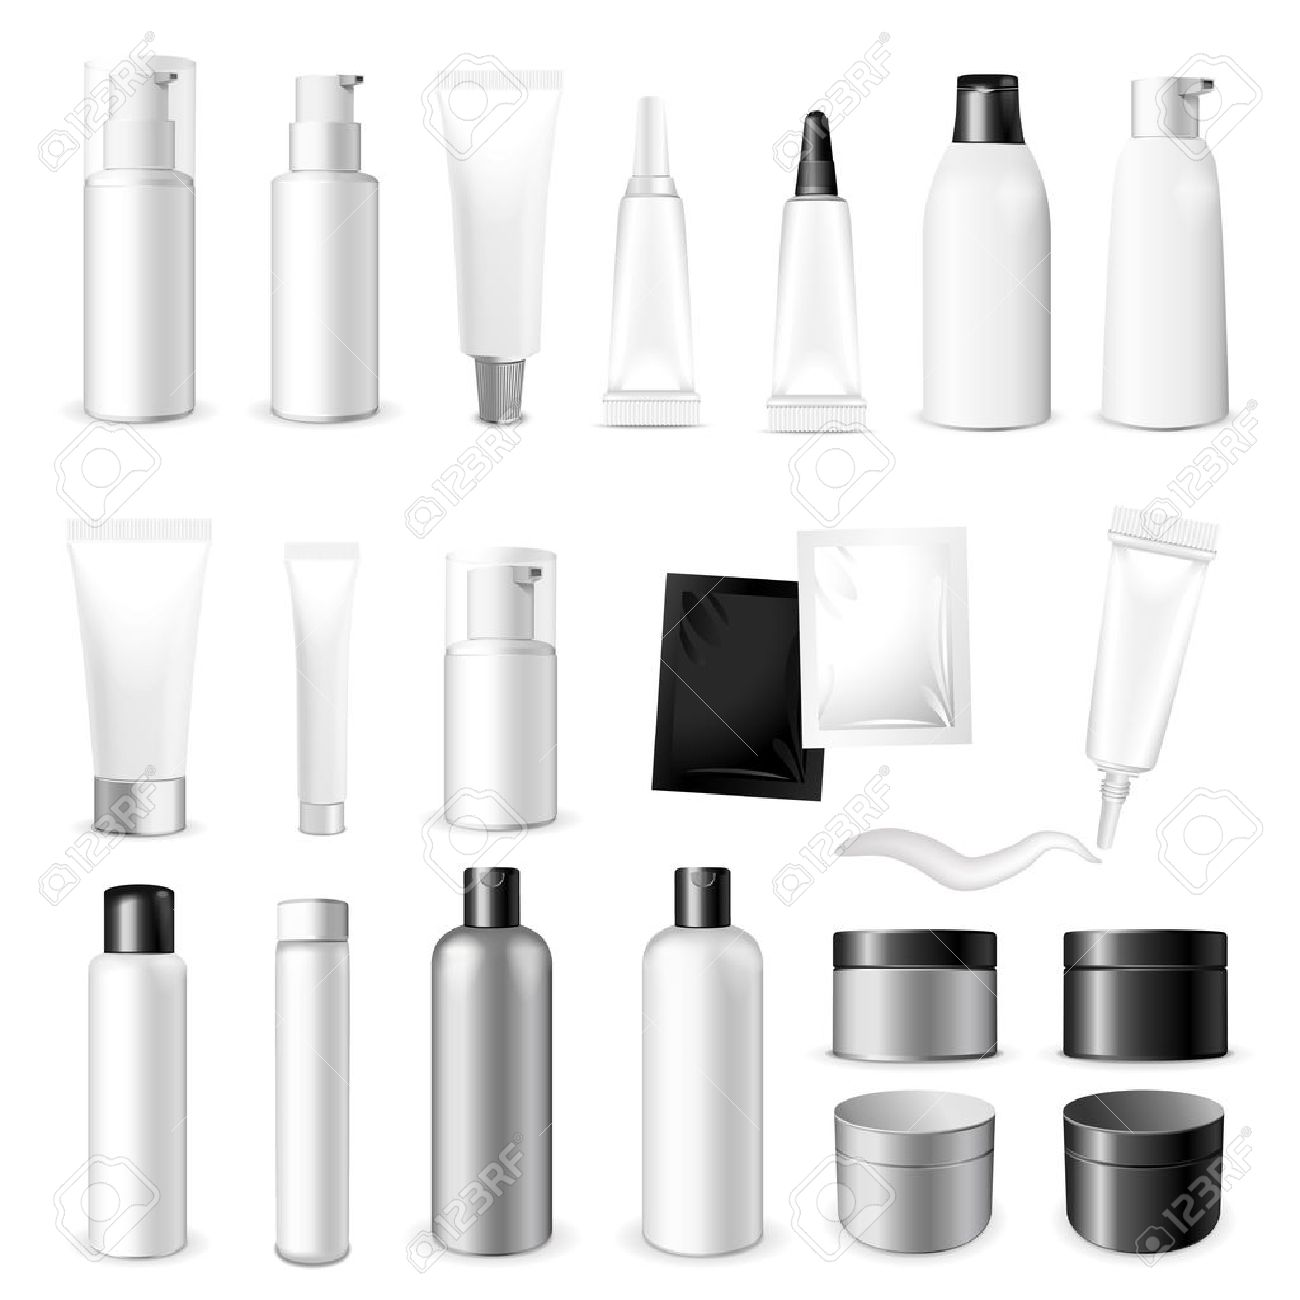 Make up. Tube of cream or gel white plastic product. Container, product and packaging. White background. - 51994301